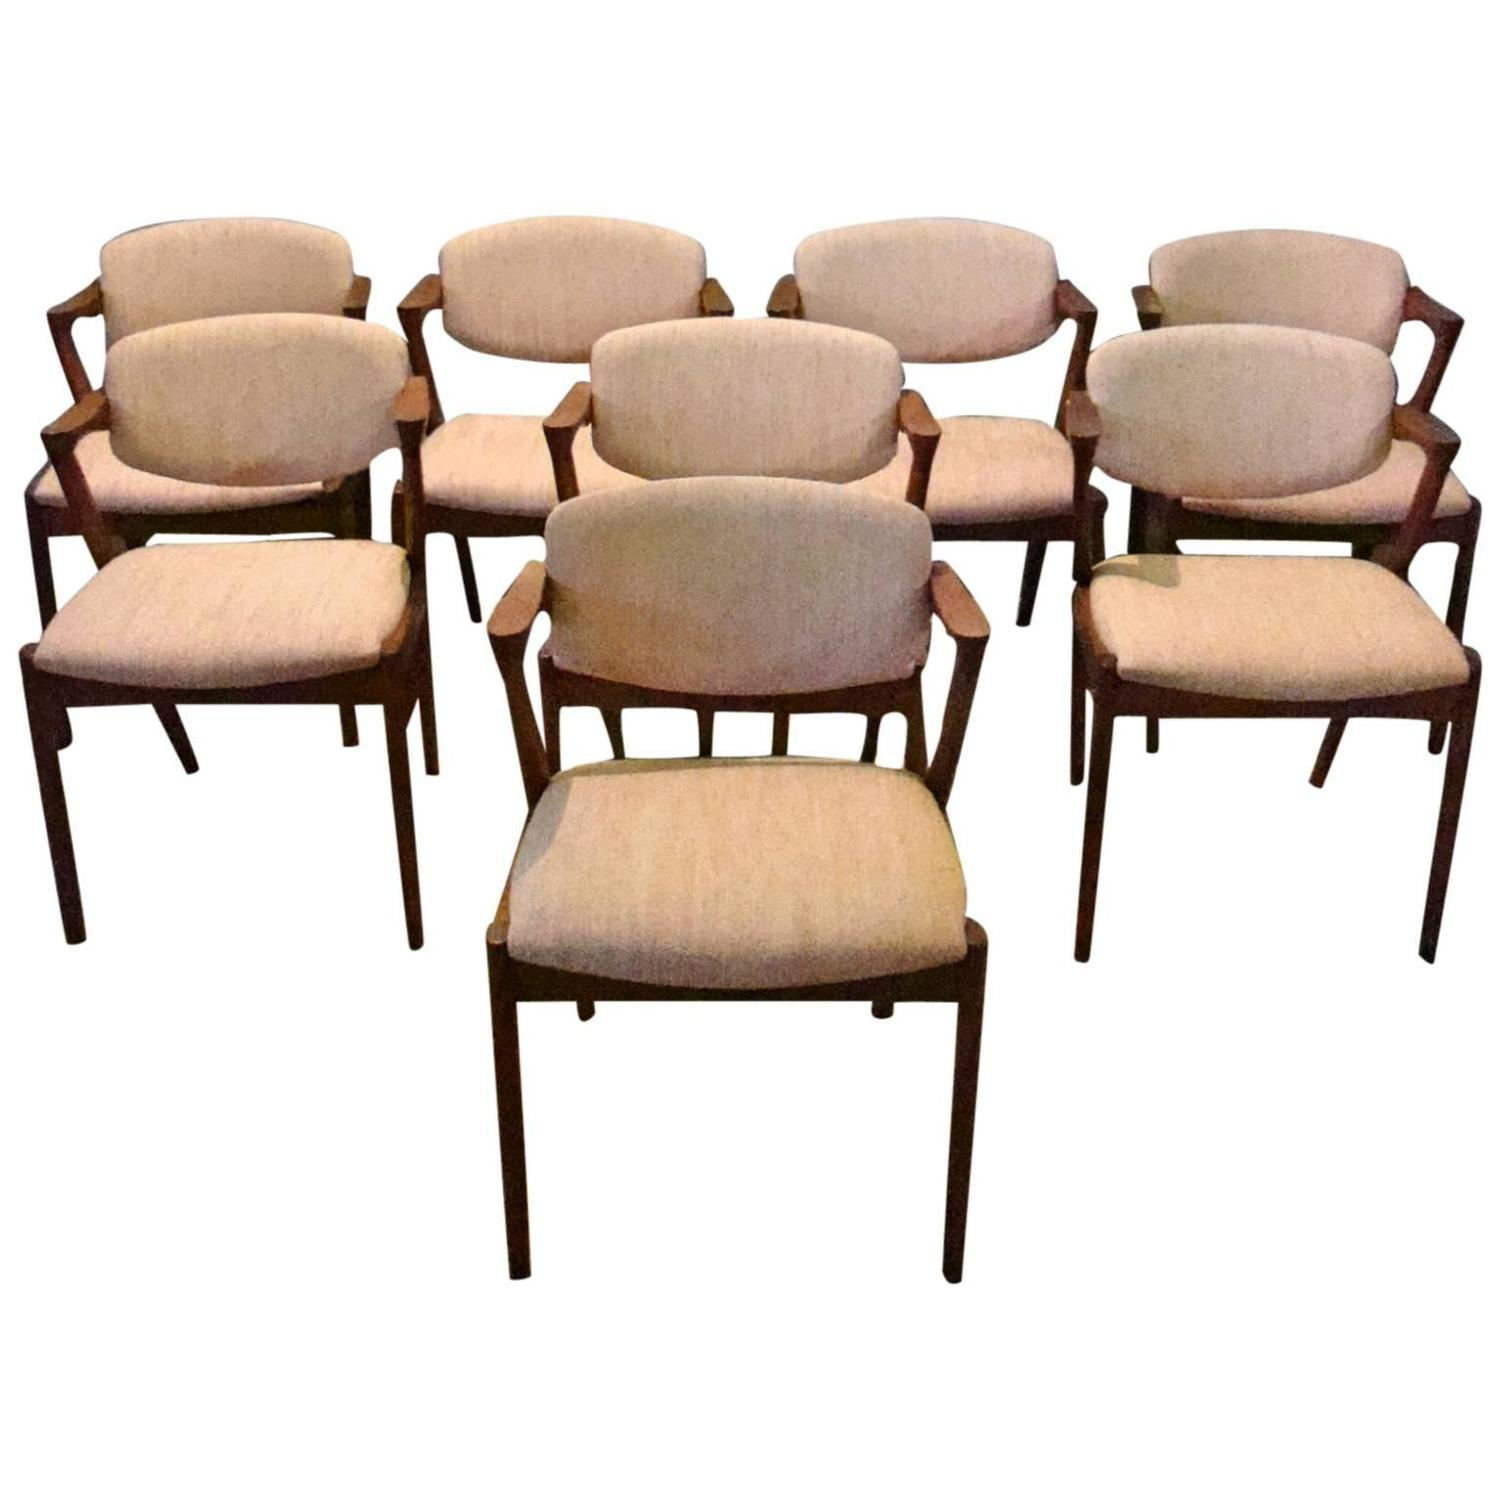 Kai kristiansen set of eight teak model 42 danish dining chairs at 1stdibs - Kai kristiansen chairs ...